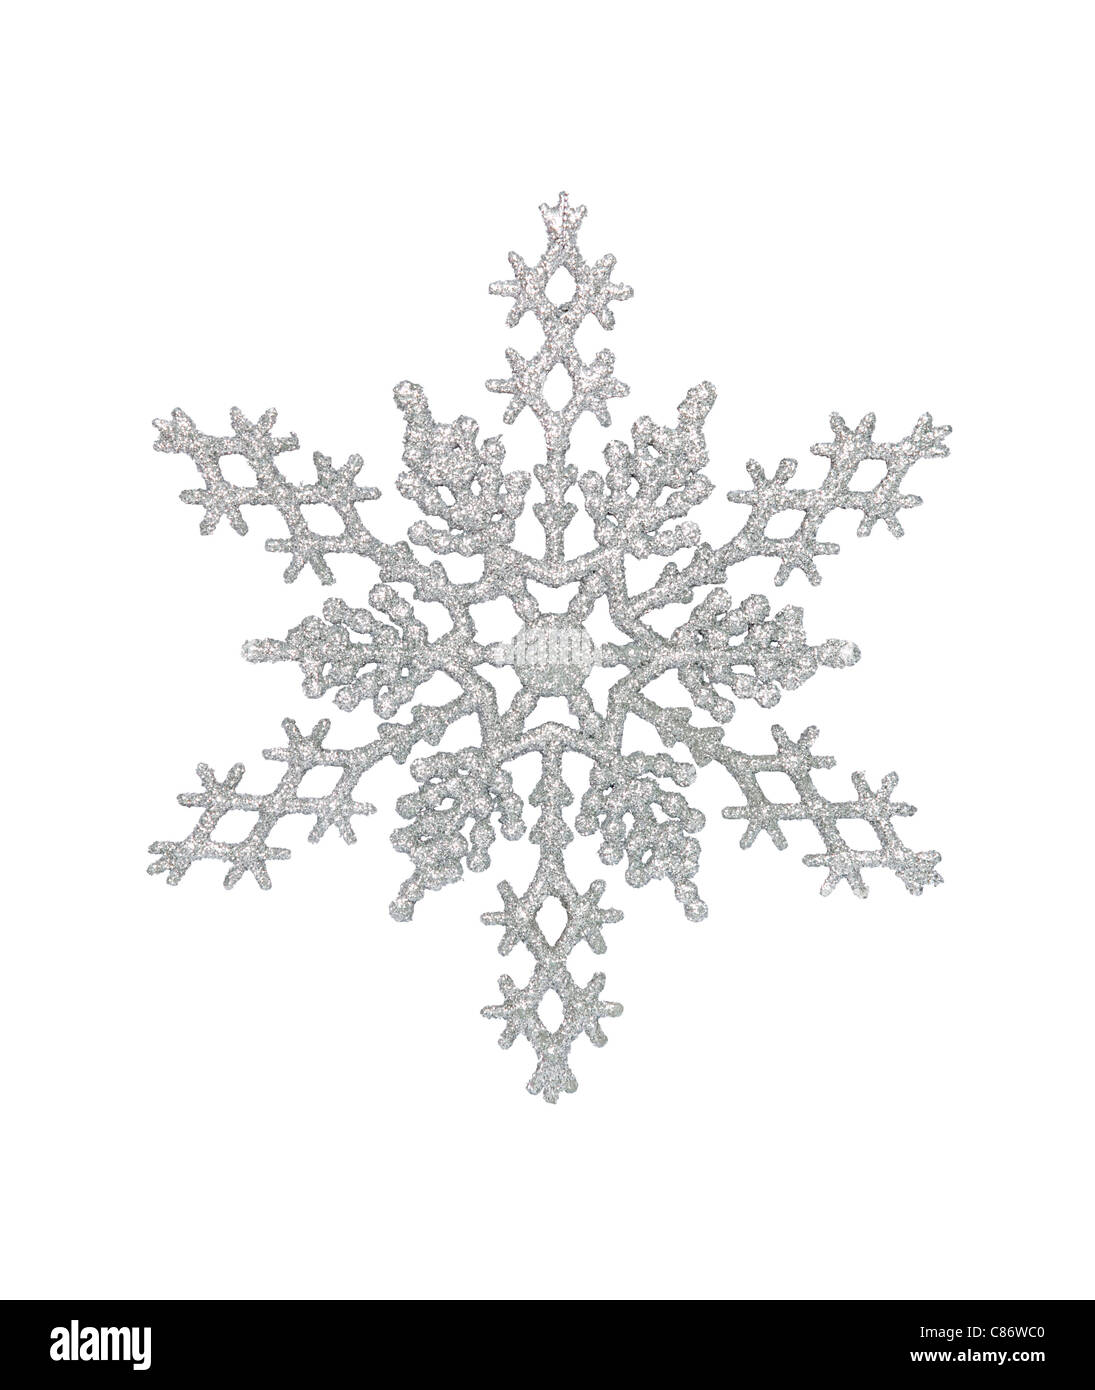 Silver snowflake, isolated w/clipping path - Stock Image